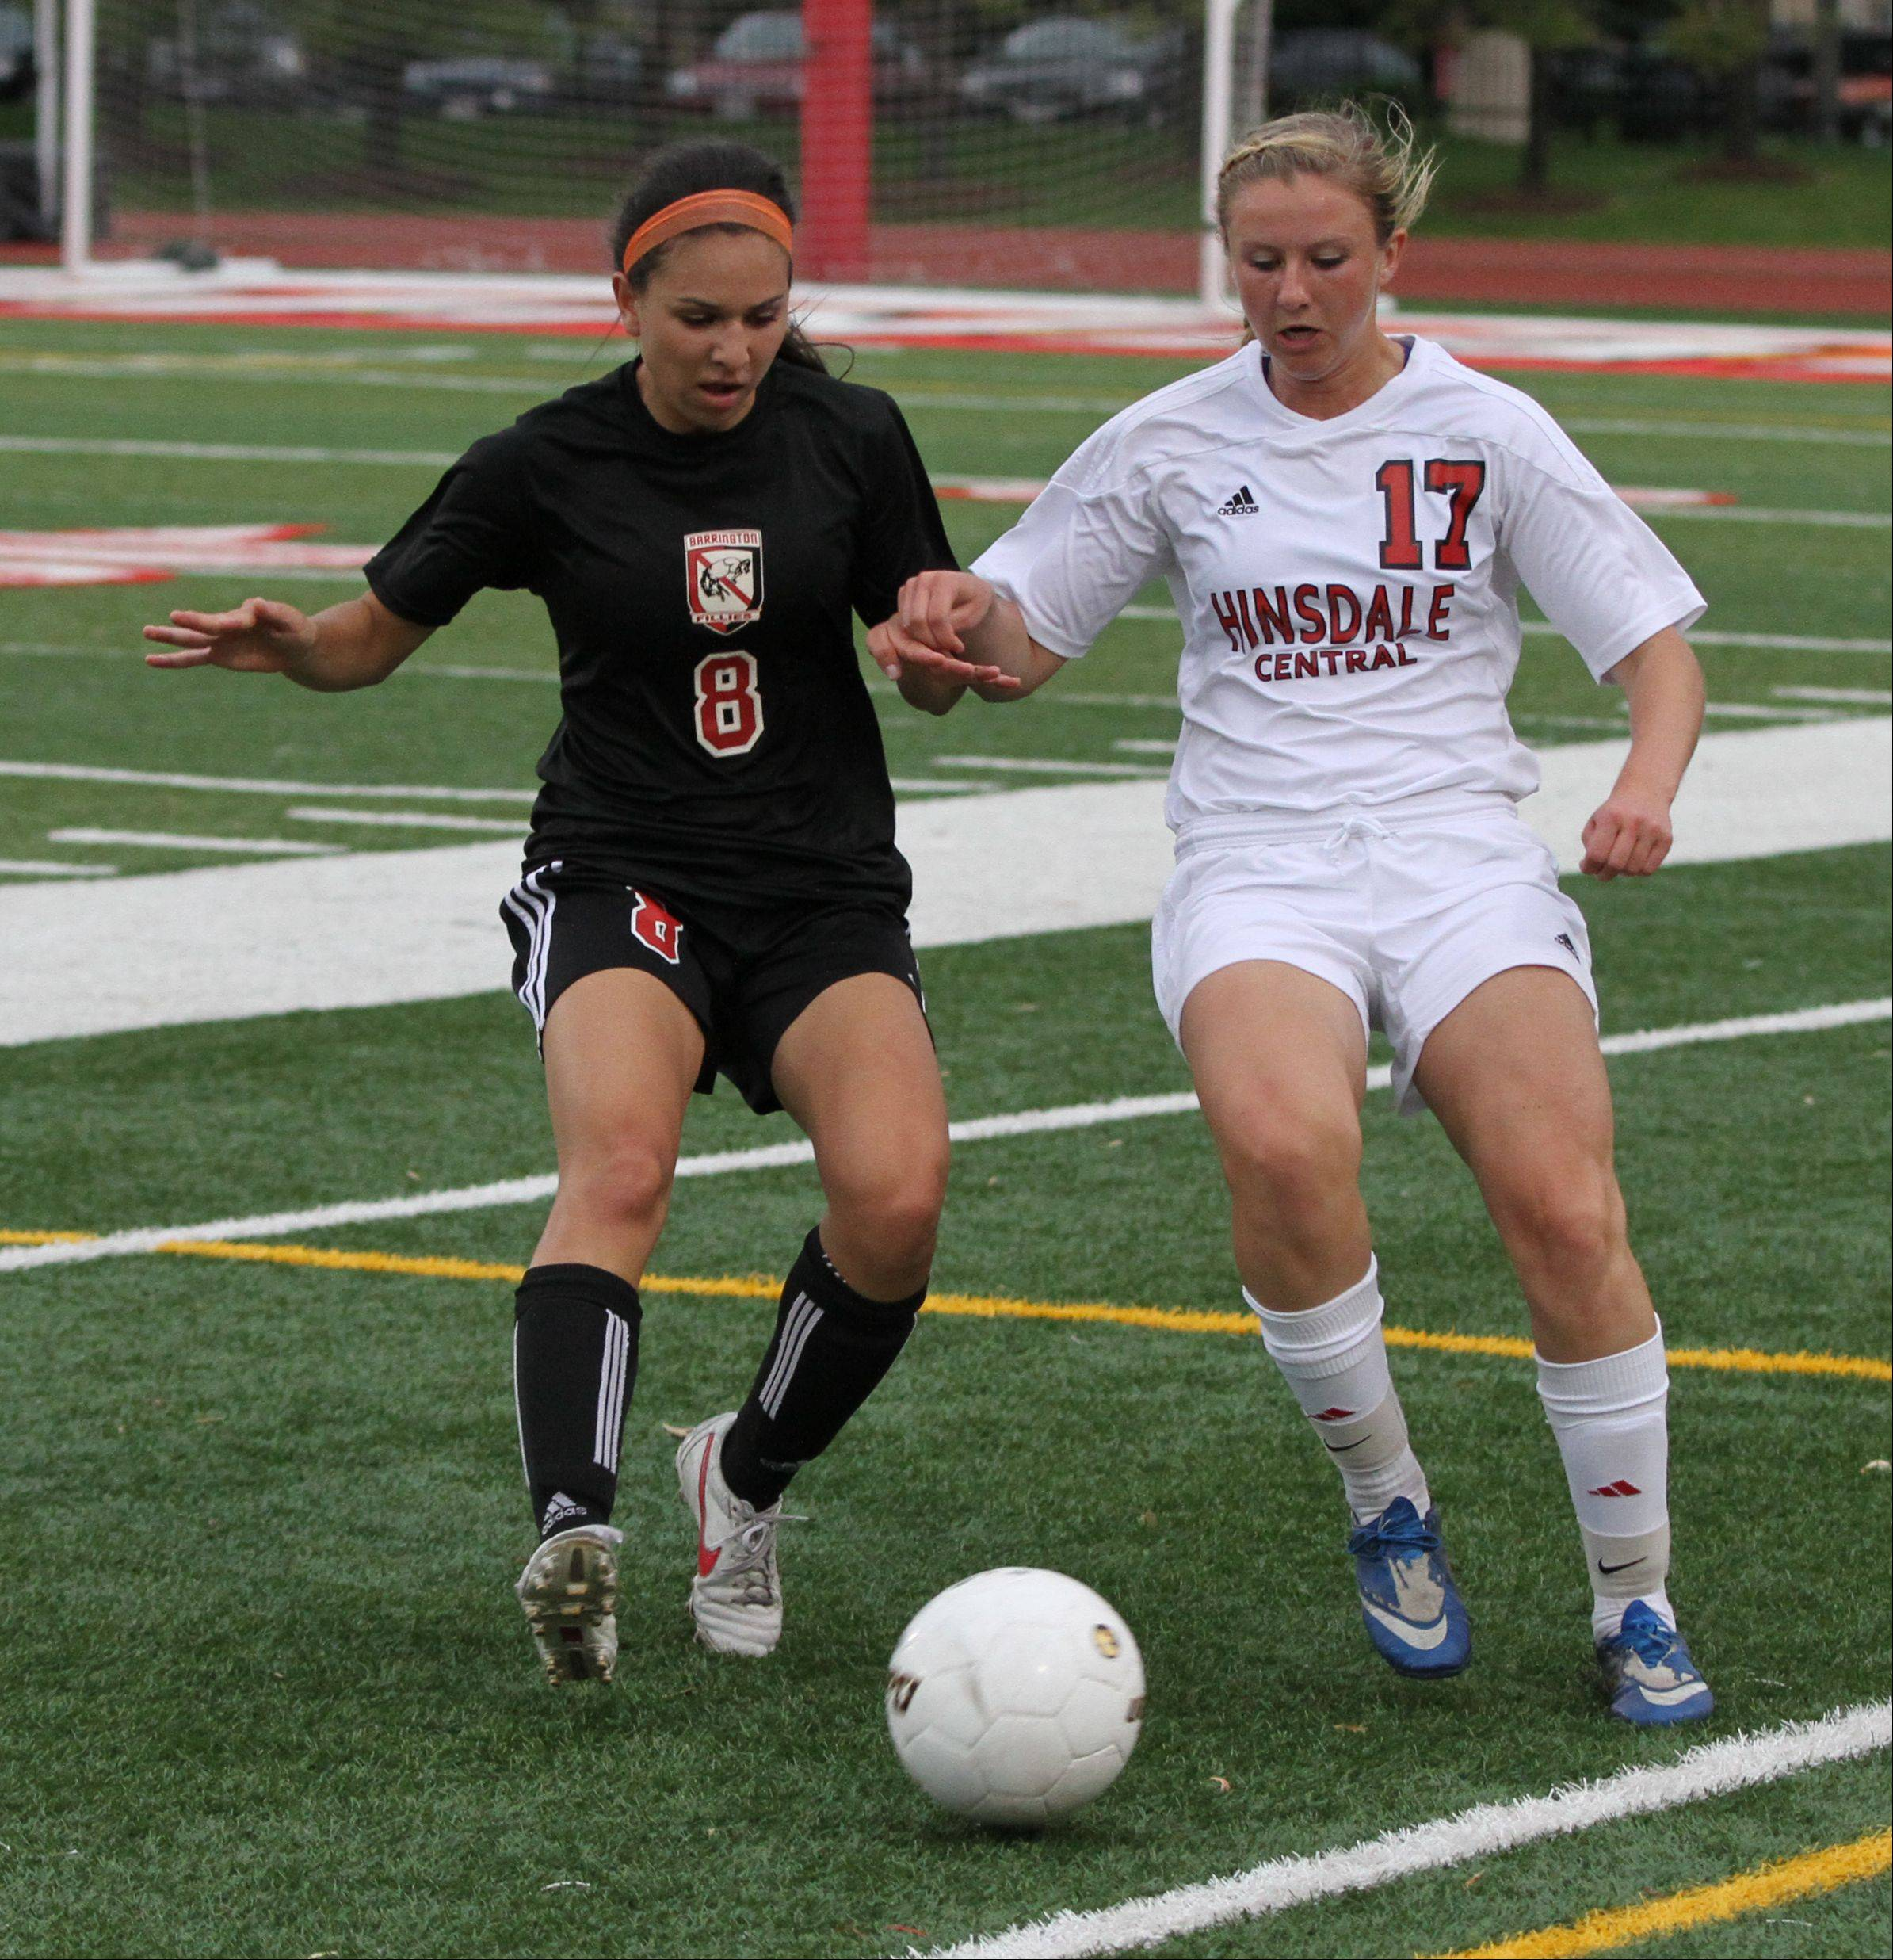 Barrington midfielder Aimee Pierce battles Hinsdale Central midfielder Lily Chetosky for the ball in the Class 3A girls soccer state semifinals Friday at North Central College.